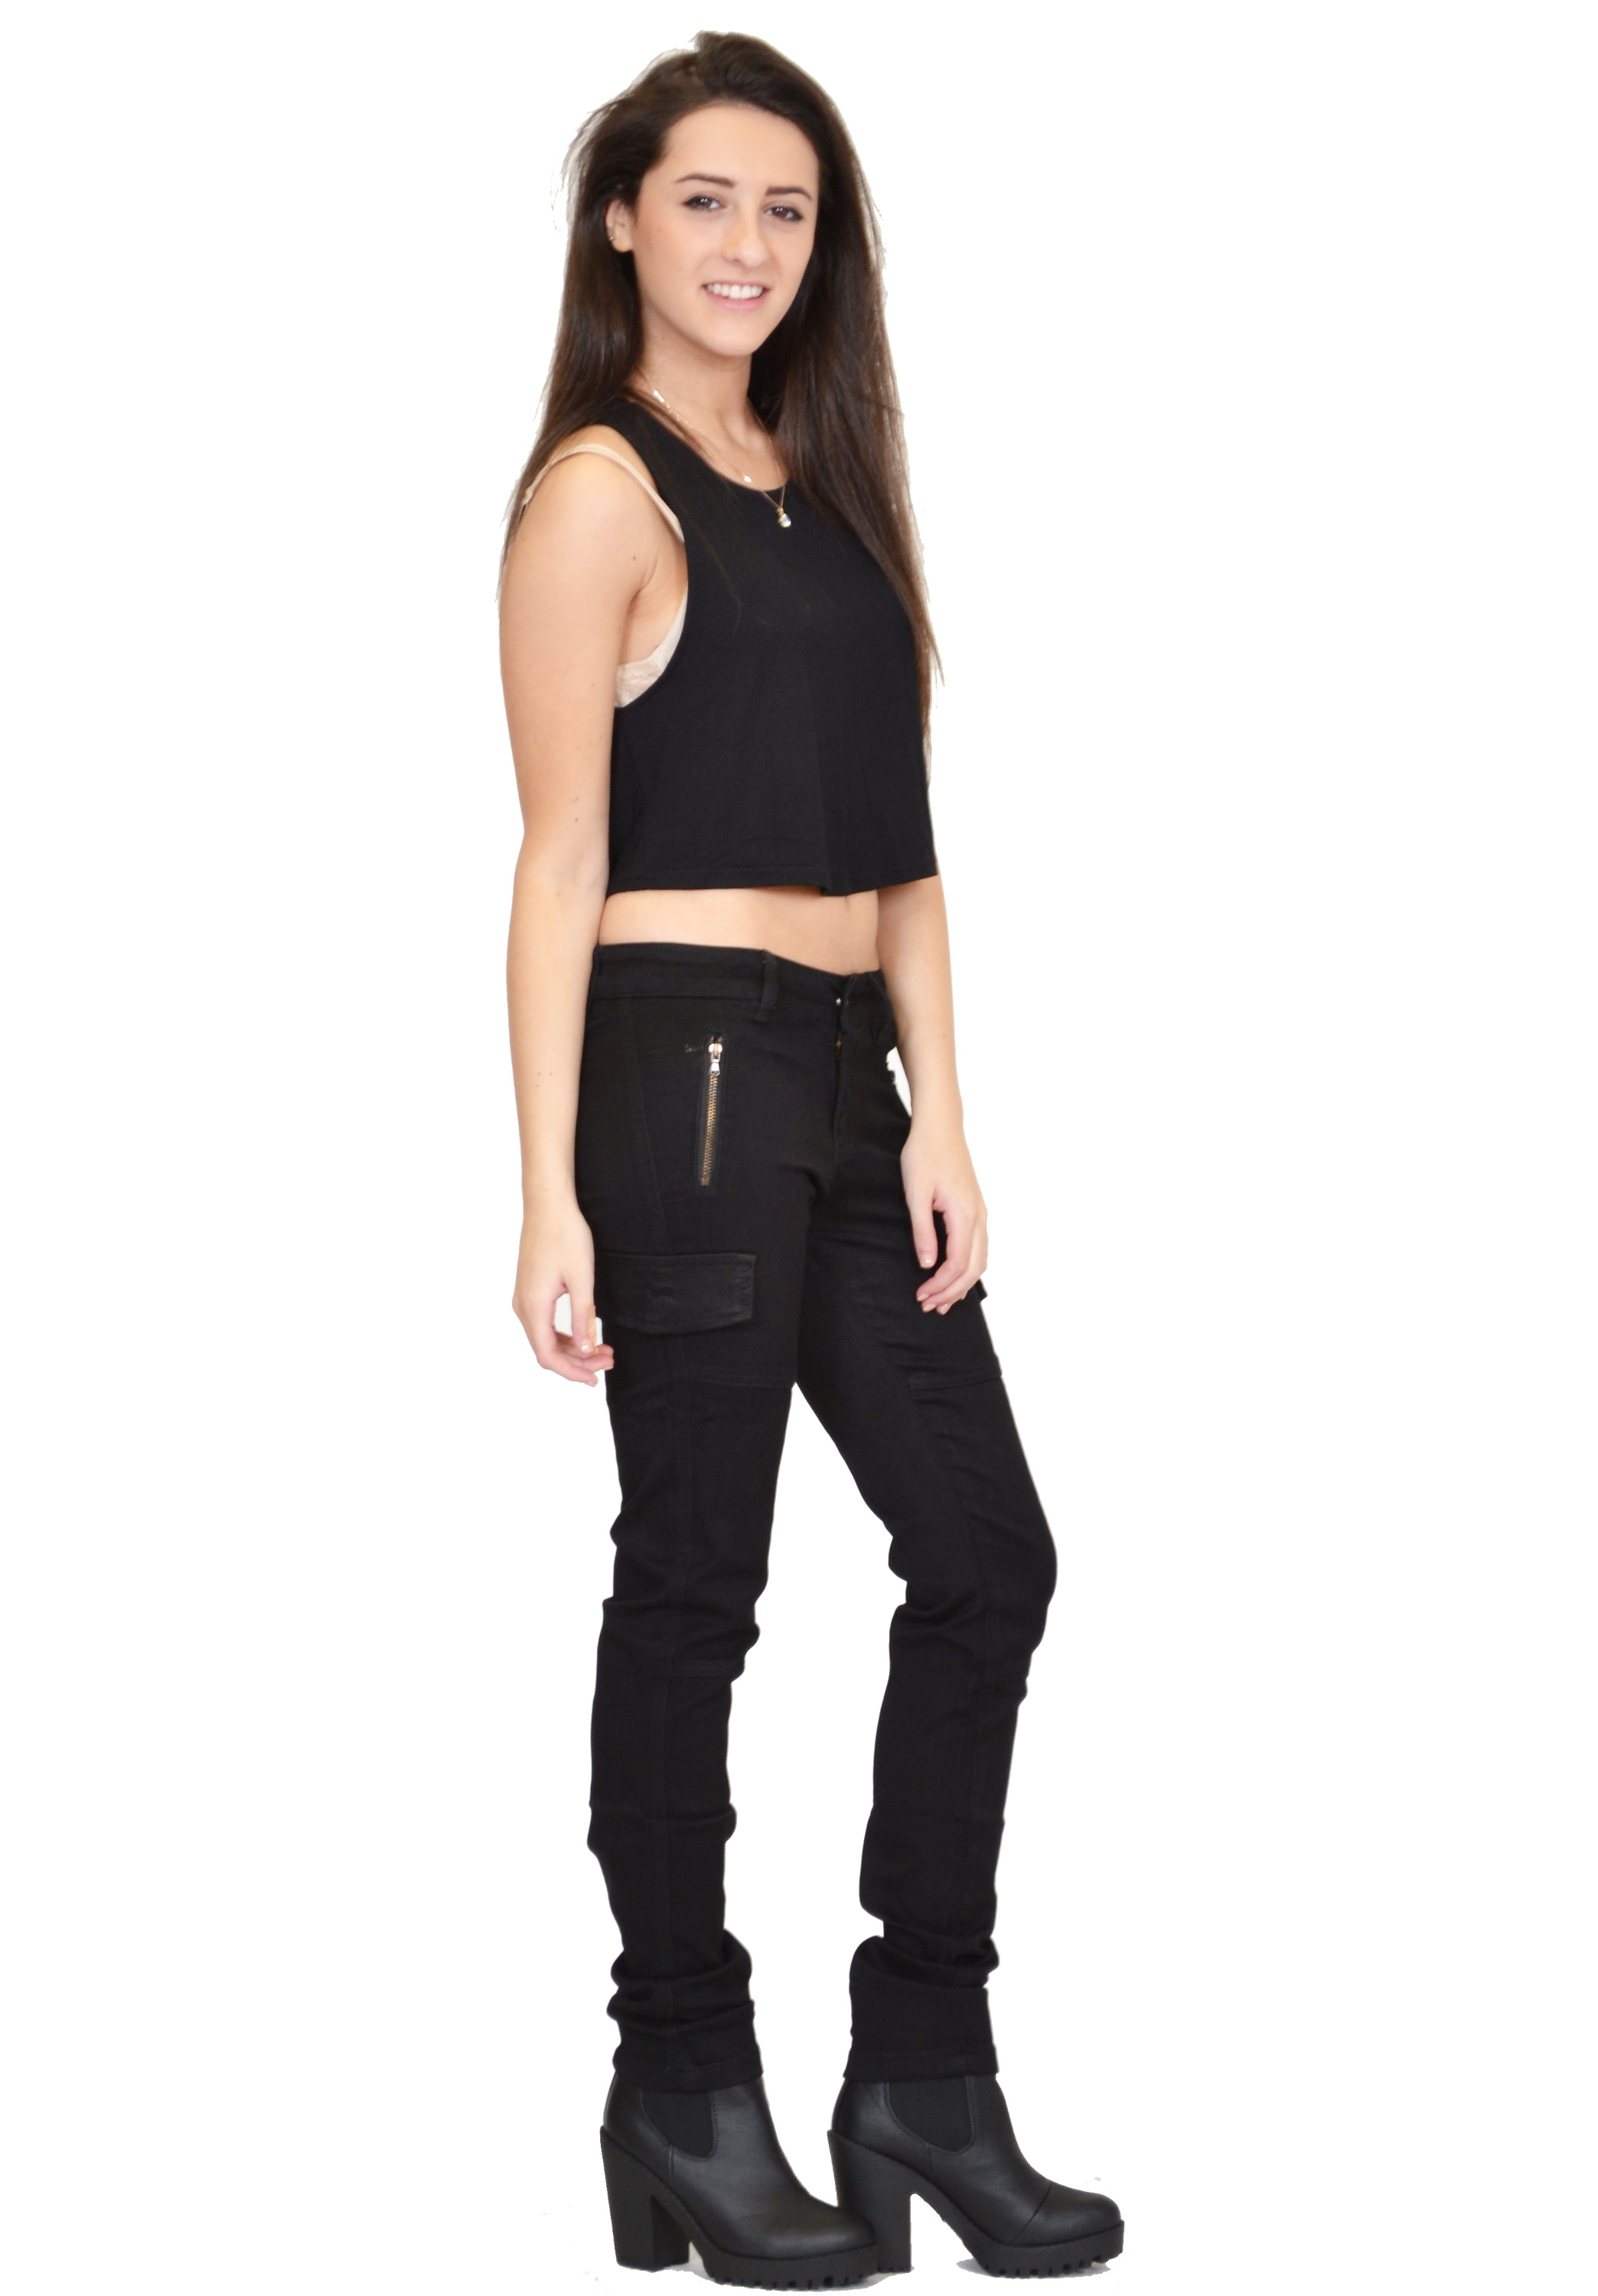 Free shipping and returns on Women's Black Wash Skinny Jeans at truexfilepv.cf